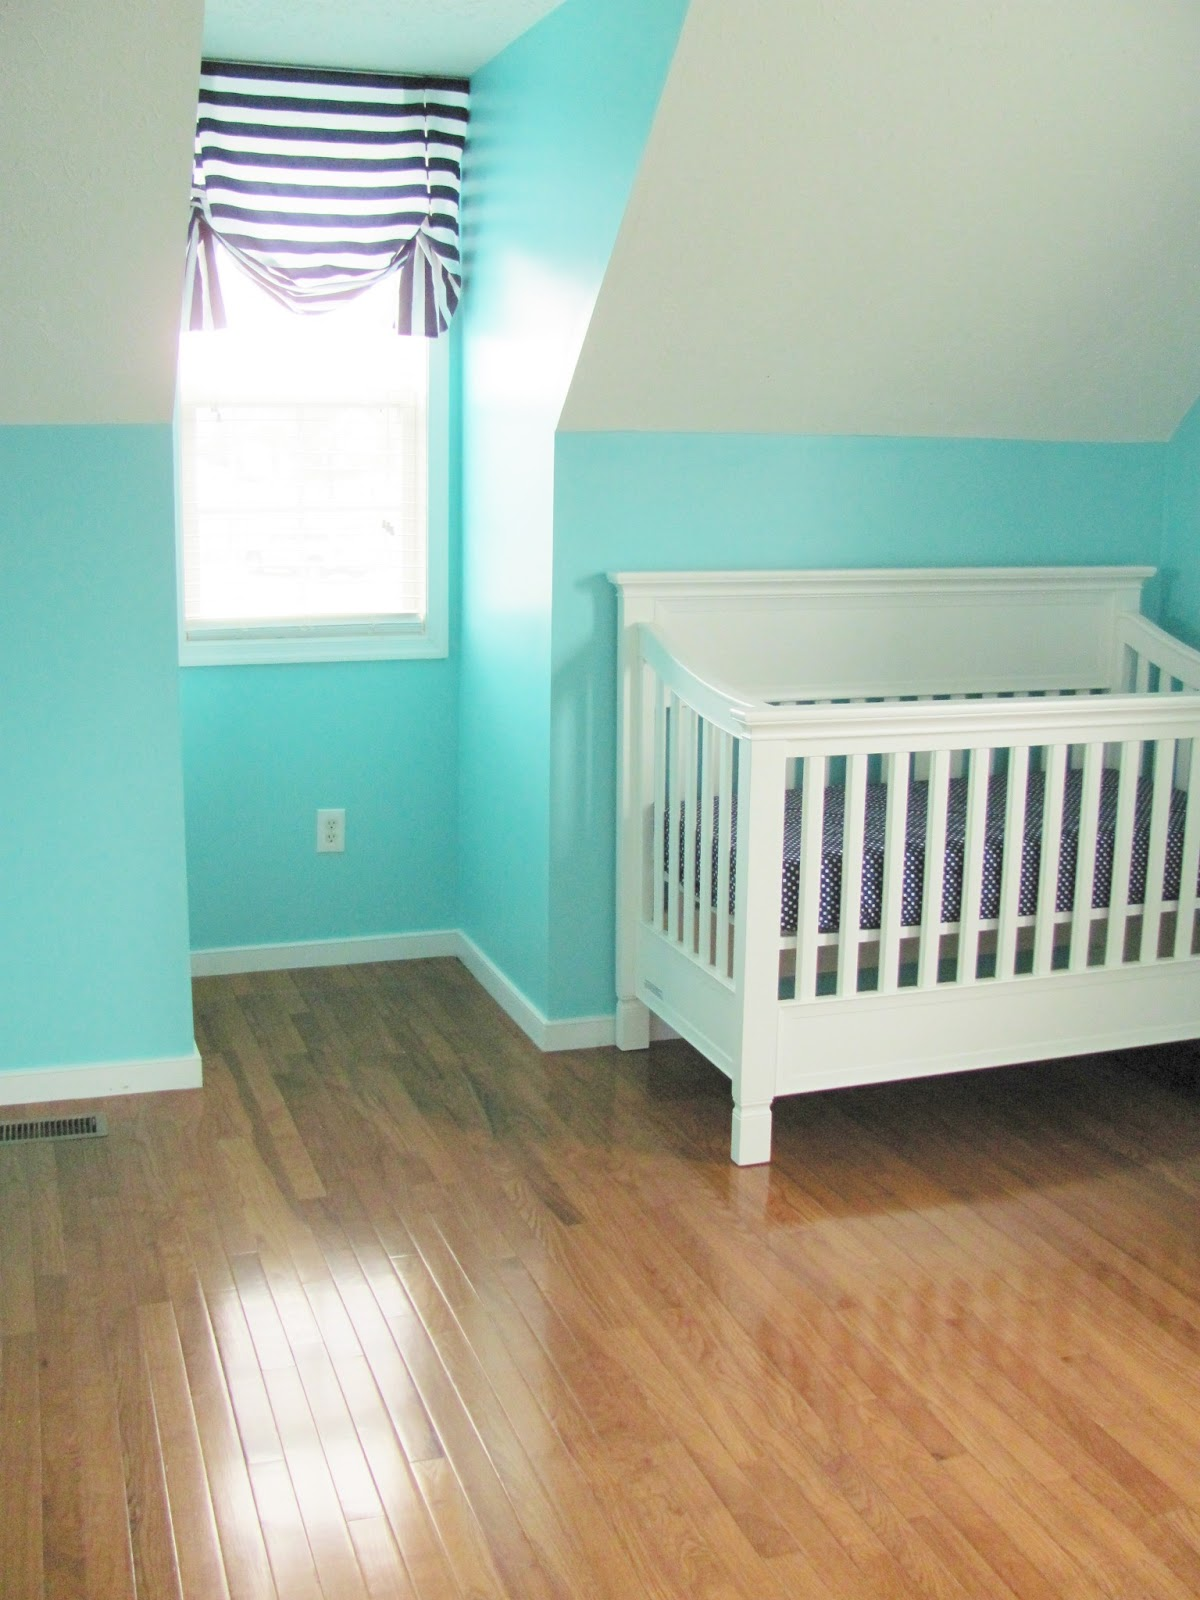 Hardwood Floors And Getting Crafty In The Nursery